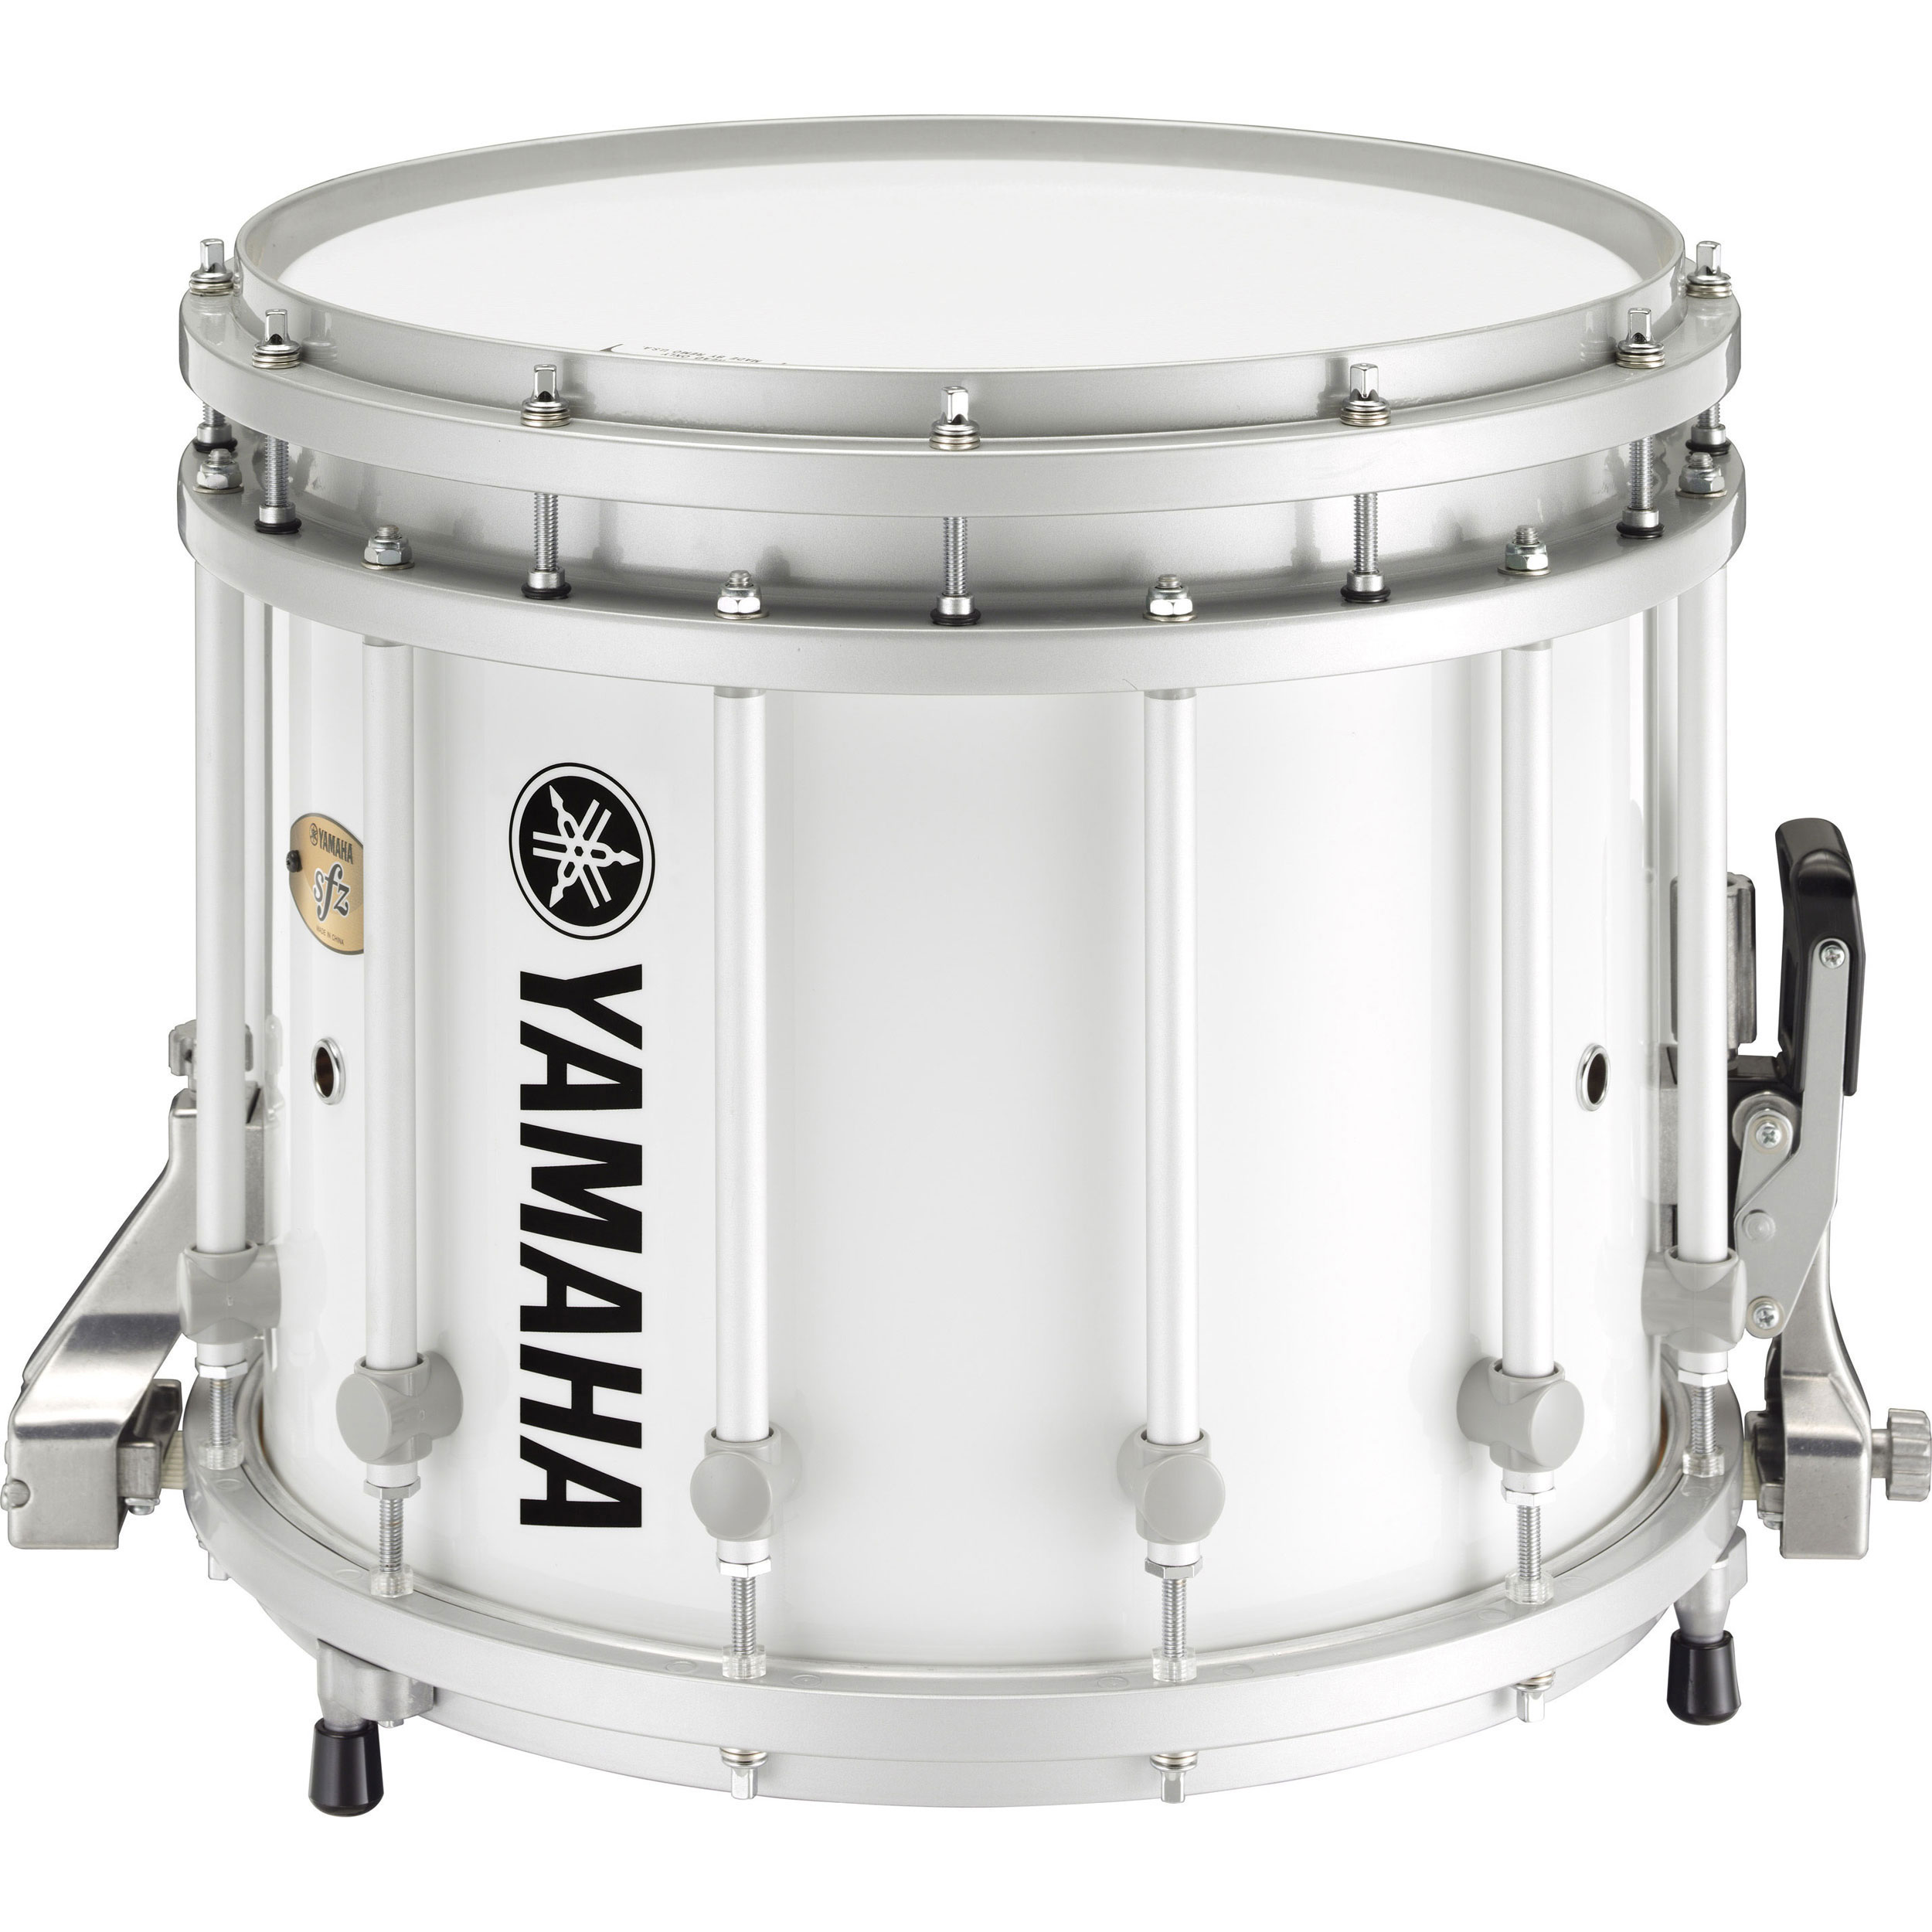 "Yamaha 14"" (Diameter) x 12"" (Deep) 9300 SFZ Marching Snare Drum"